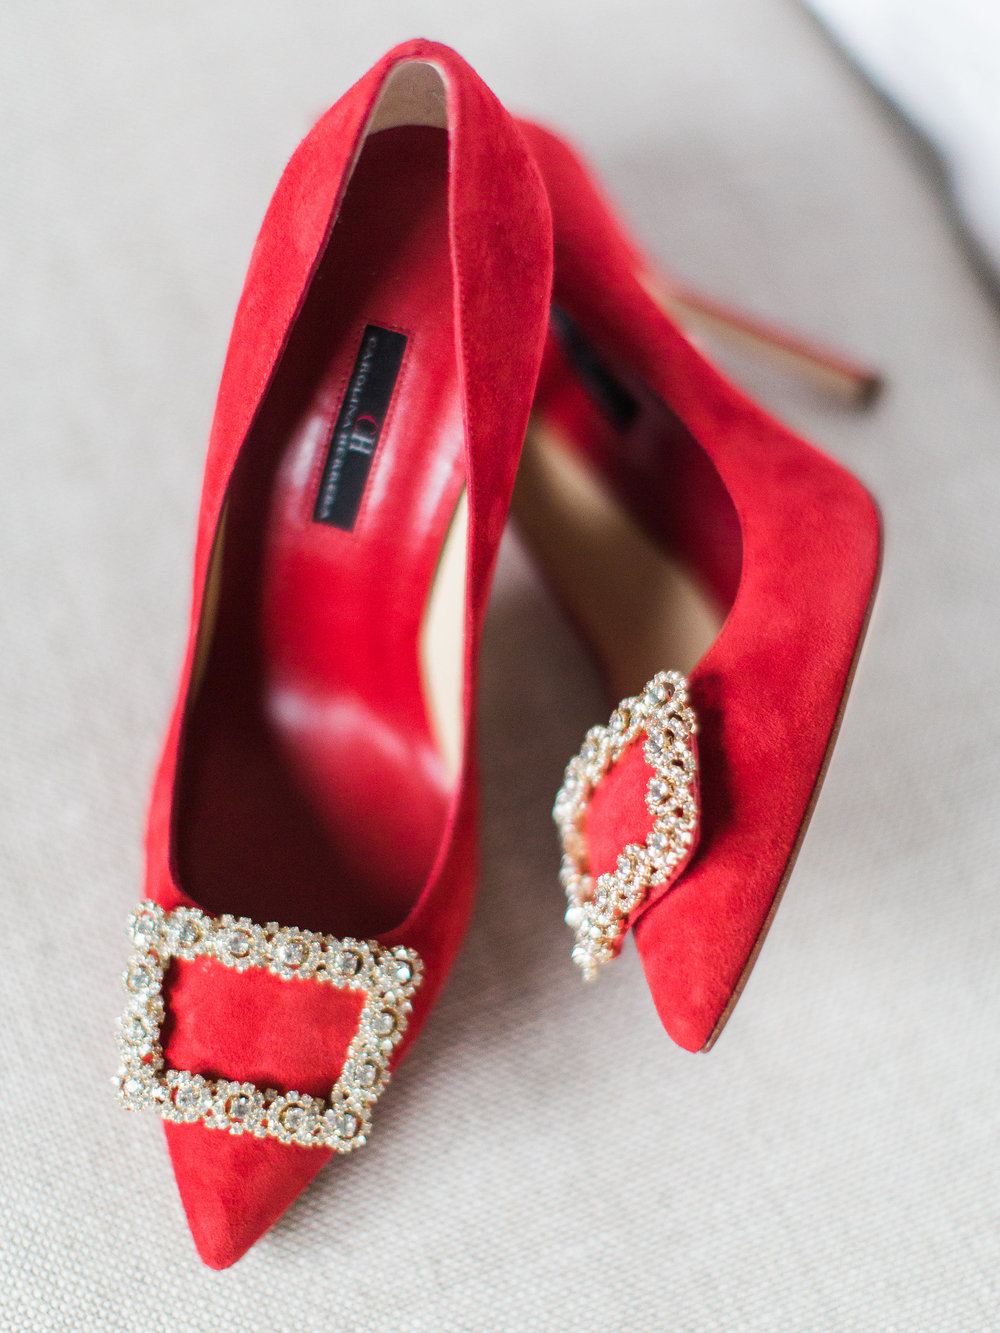 The Perfect Red Wedding Shoes by Carolina Herrera